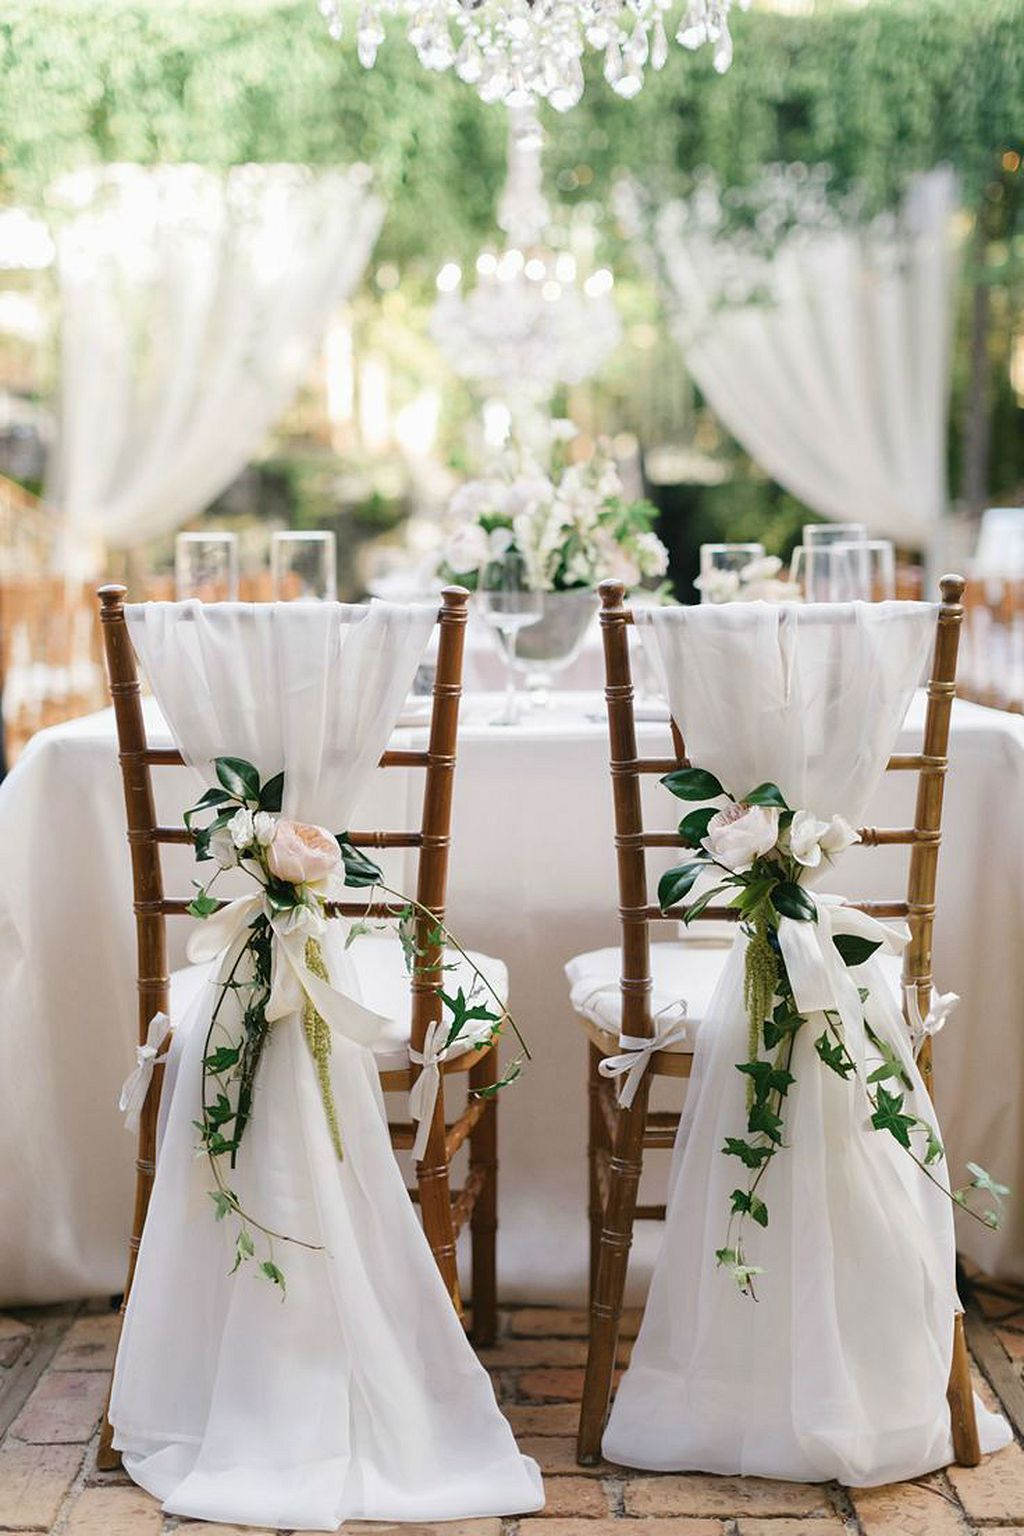 decorating ideas for outside wedding ceremony%0A career builder cover letter example